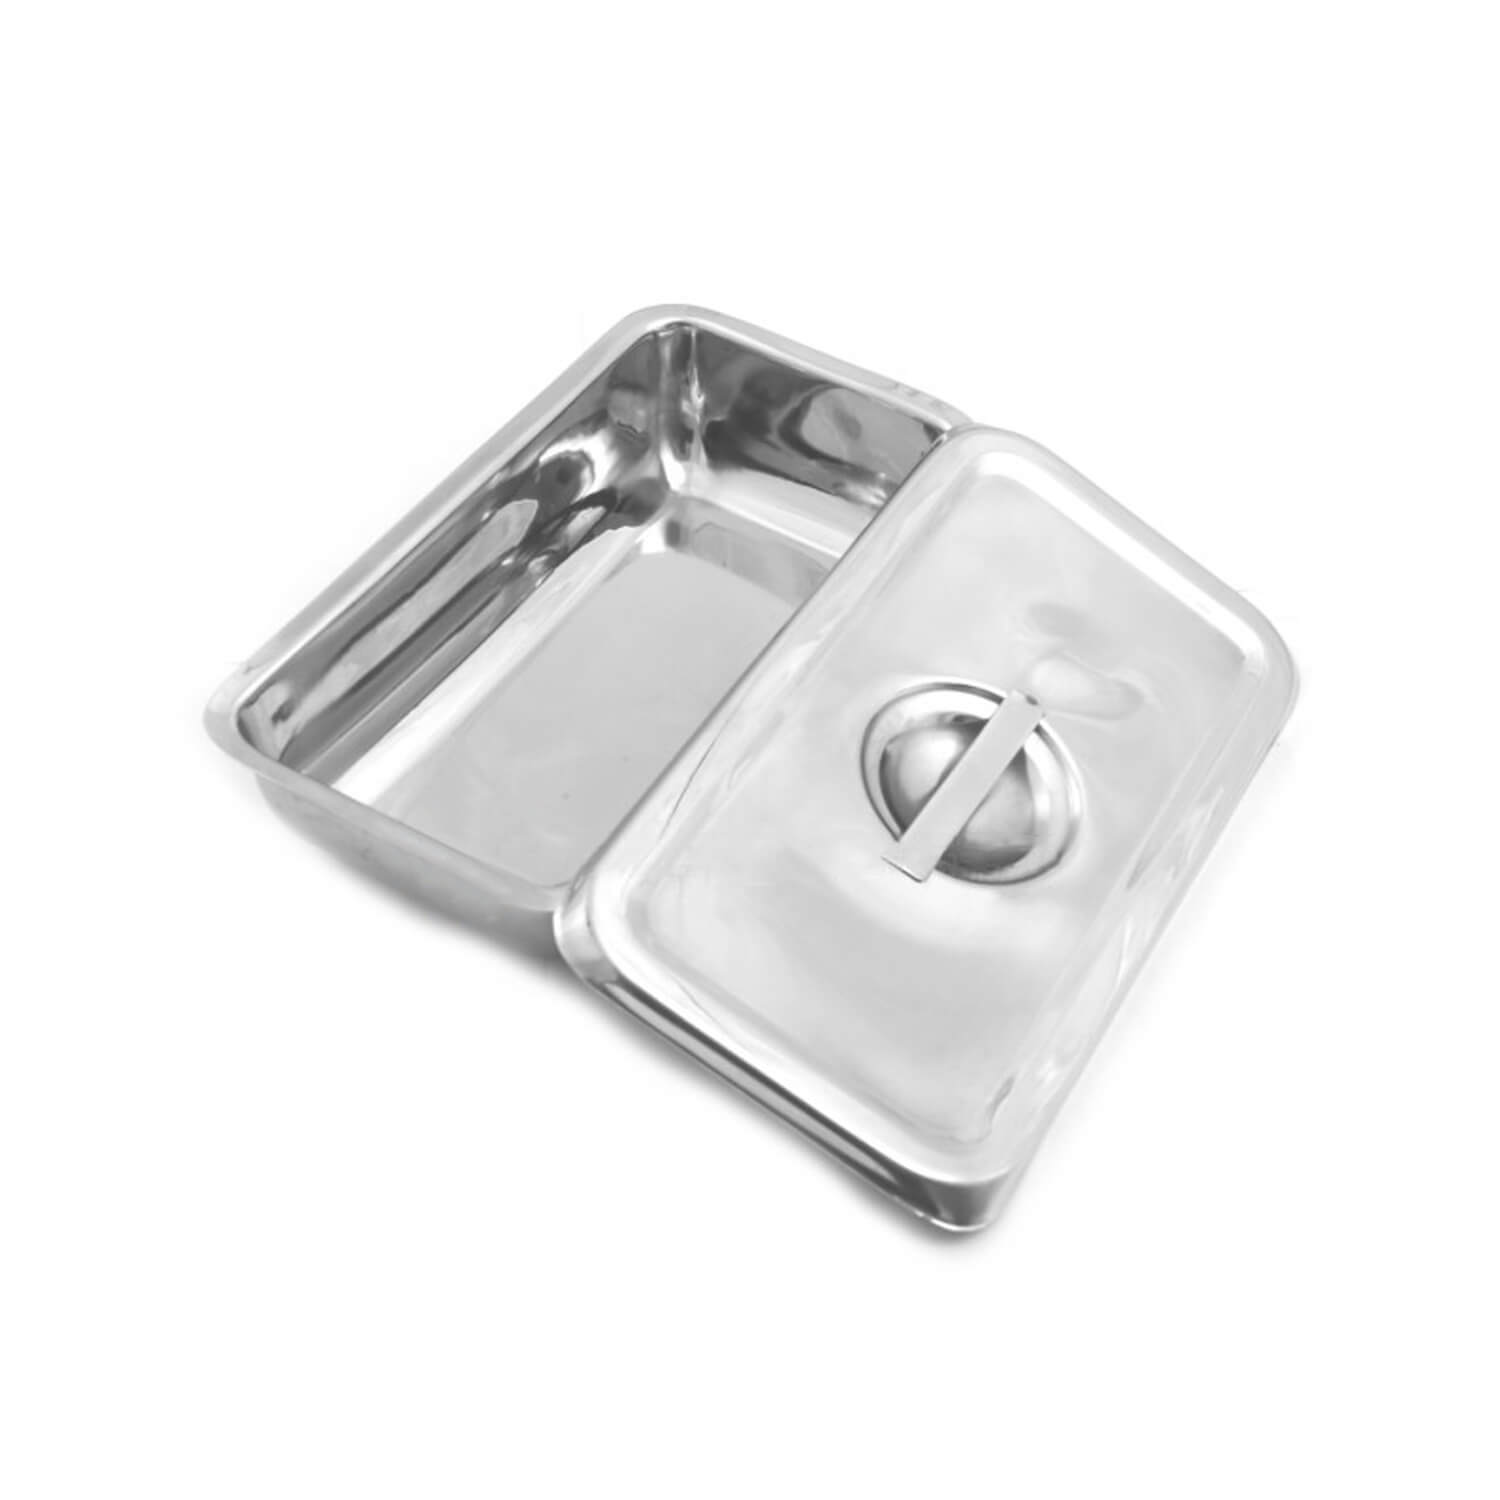 "Instruments Sterilization Tray 8"" X 4"" Surgical Dental Sterilizing Instruments"